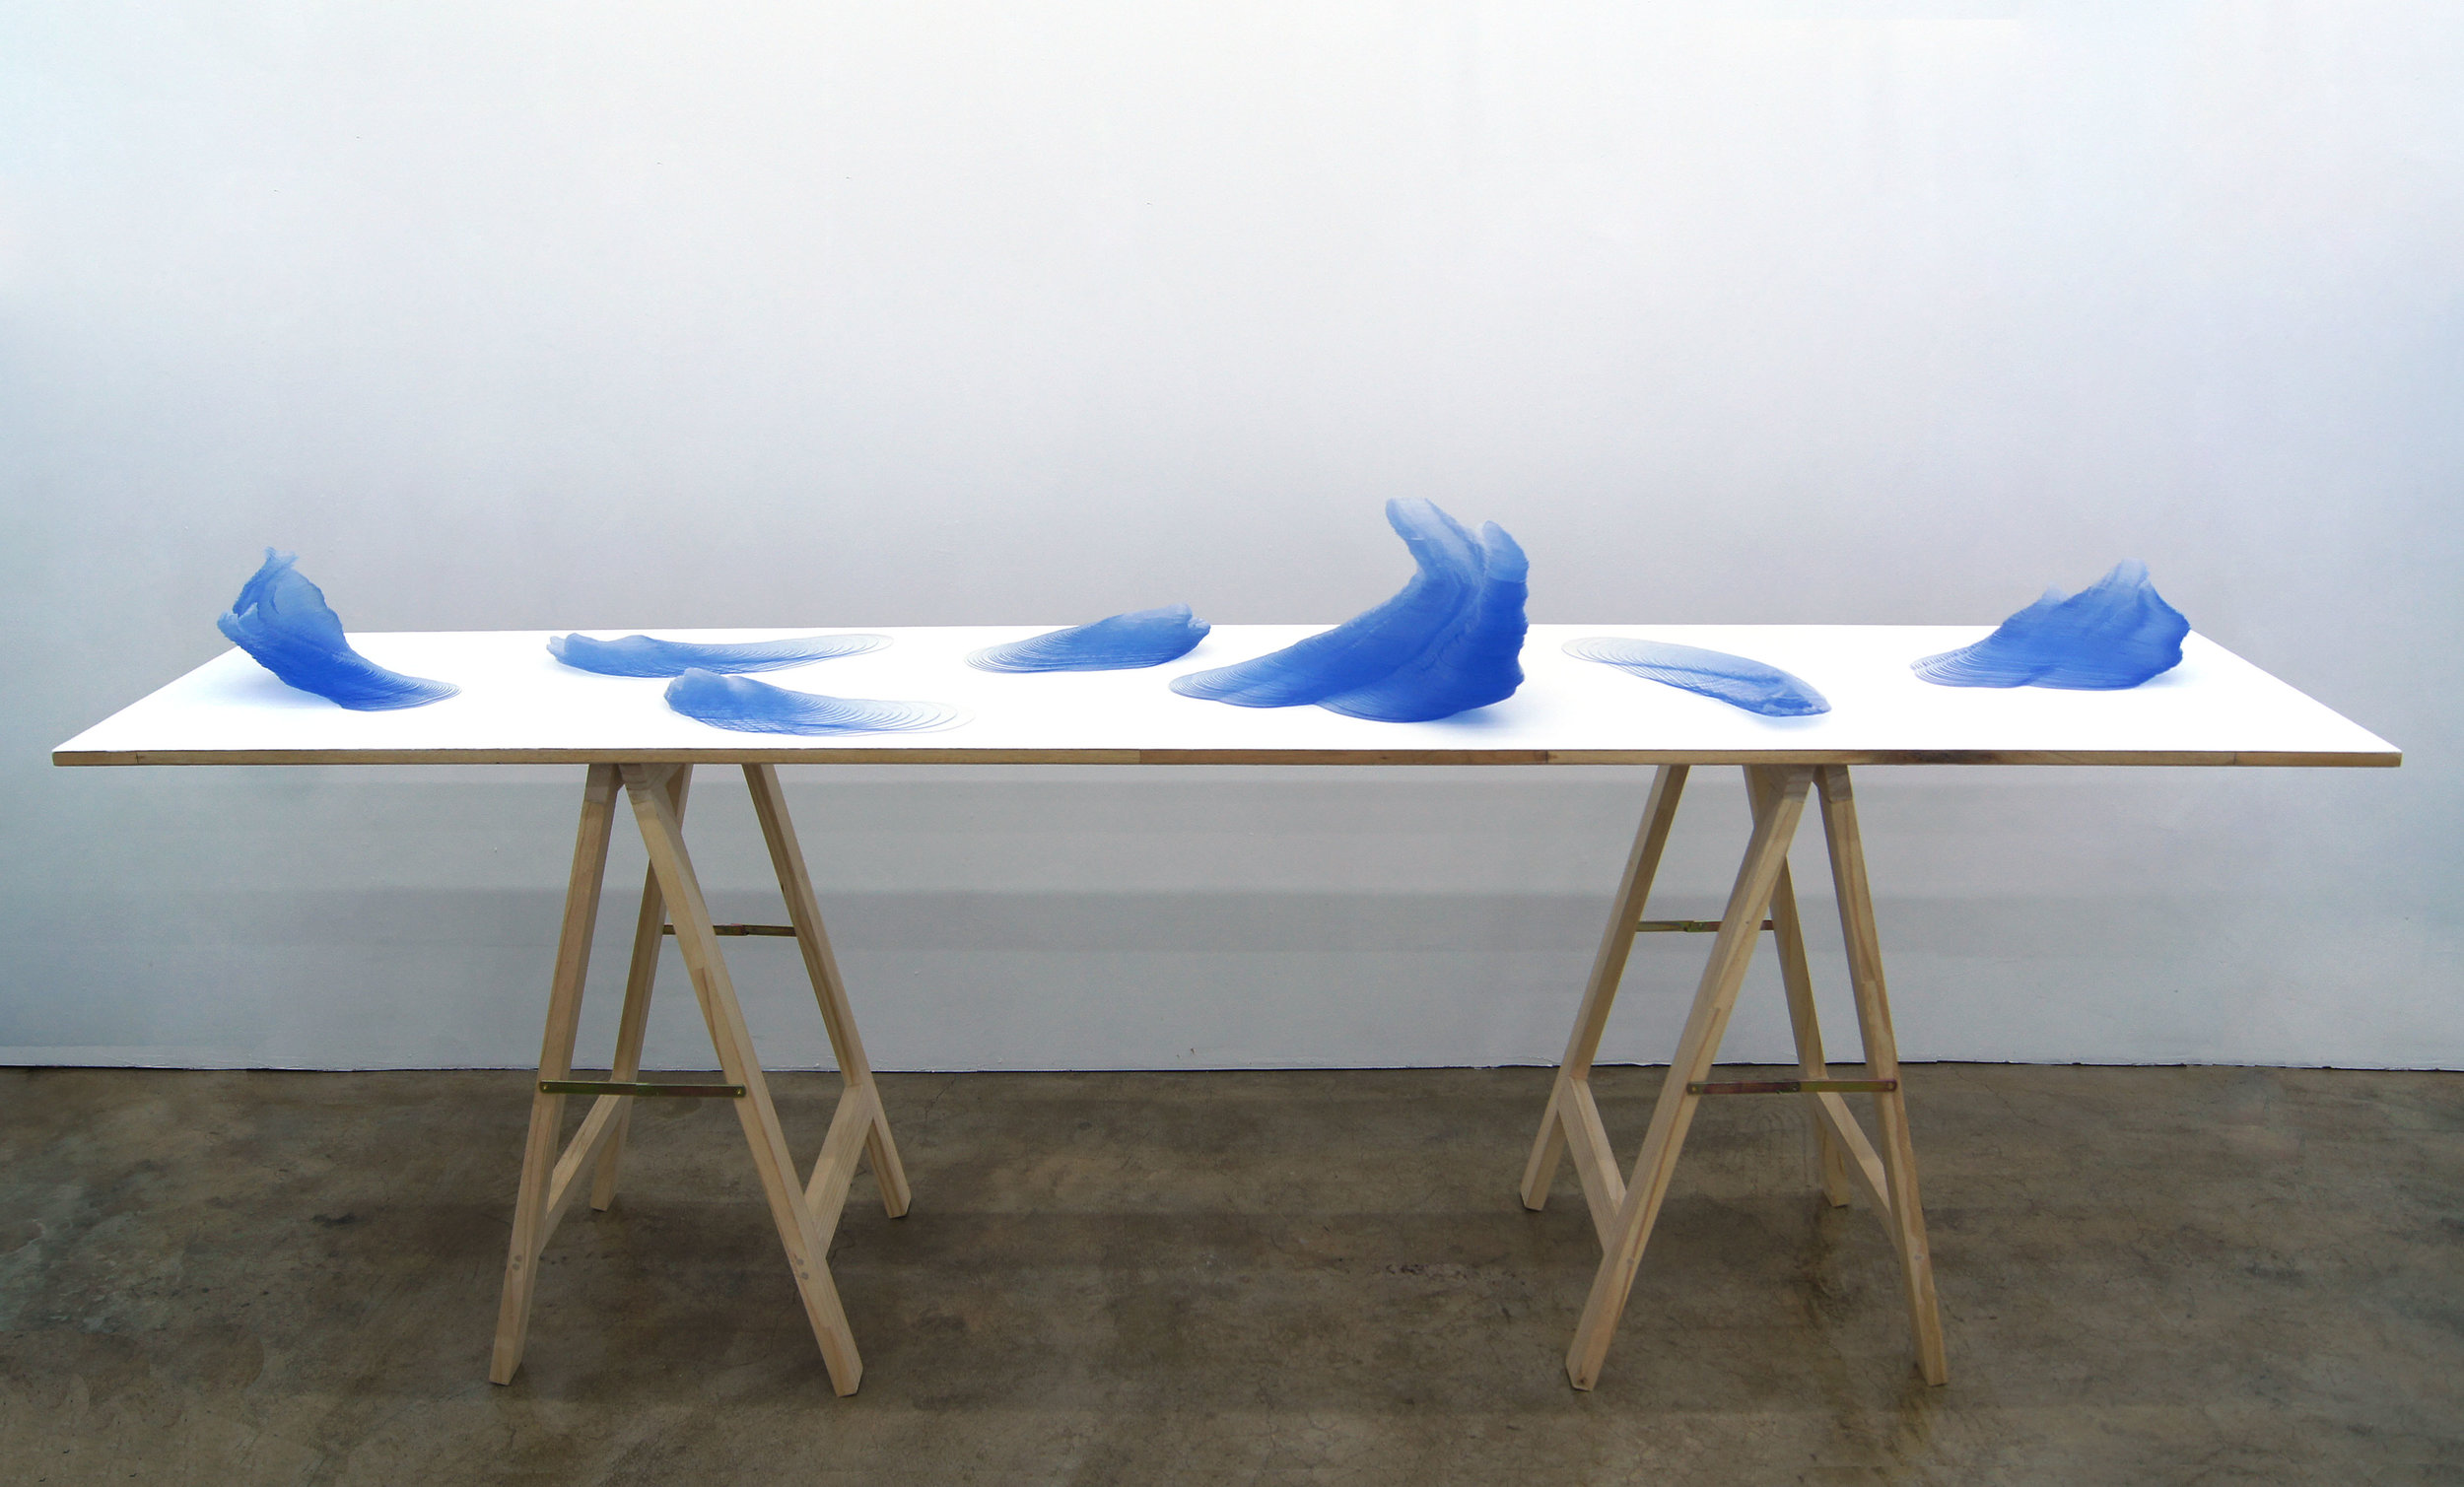 Kim Yunsoo,  Waves , 2018, Accumulating PVC, wood, paint, 244 x 50 x 100cm. Courtesy of the artist & Gallery SoSo.